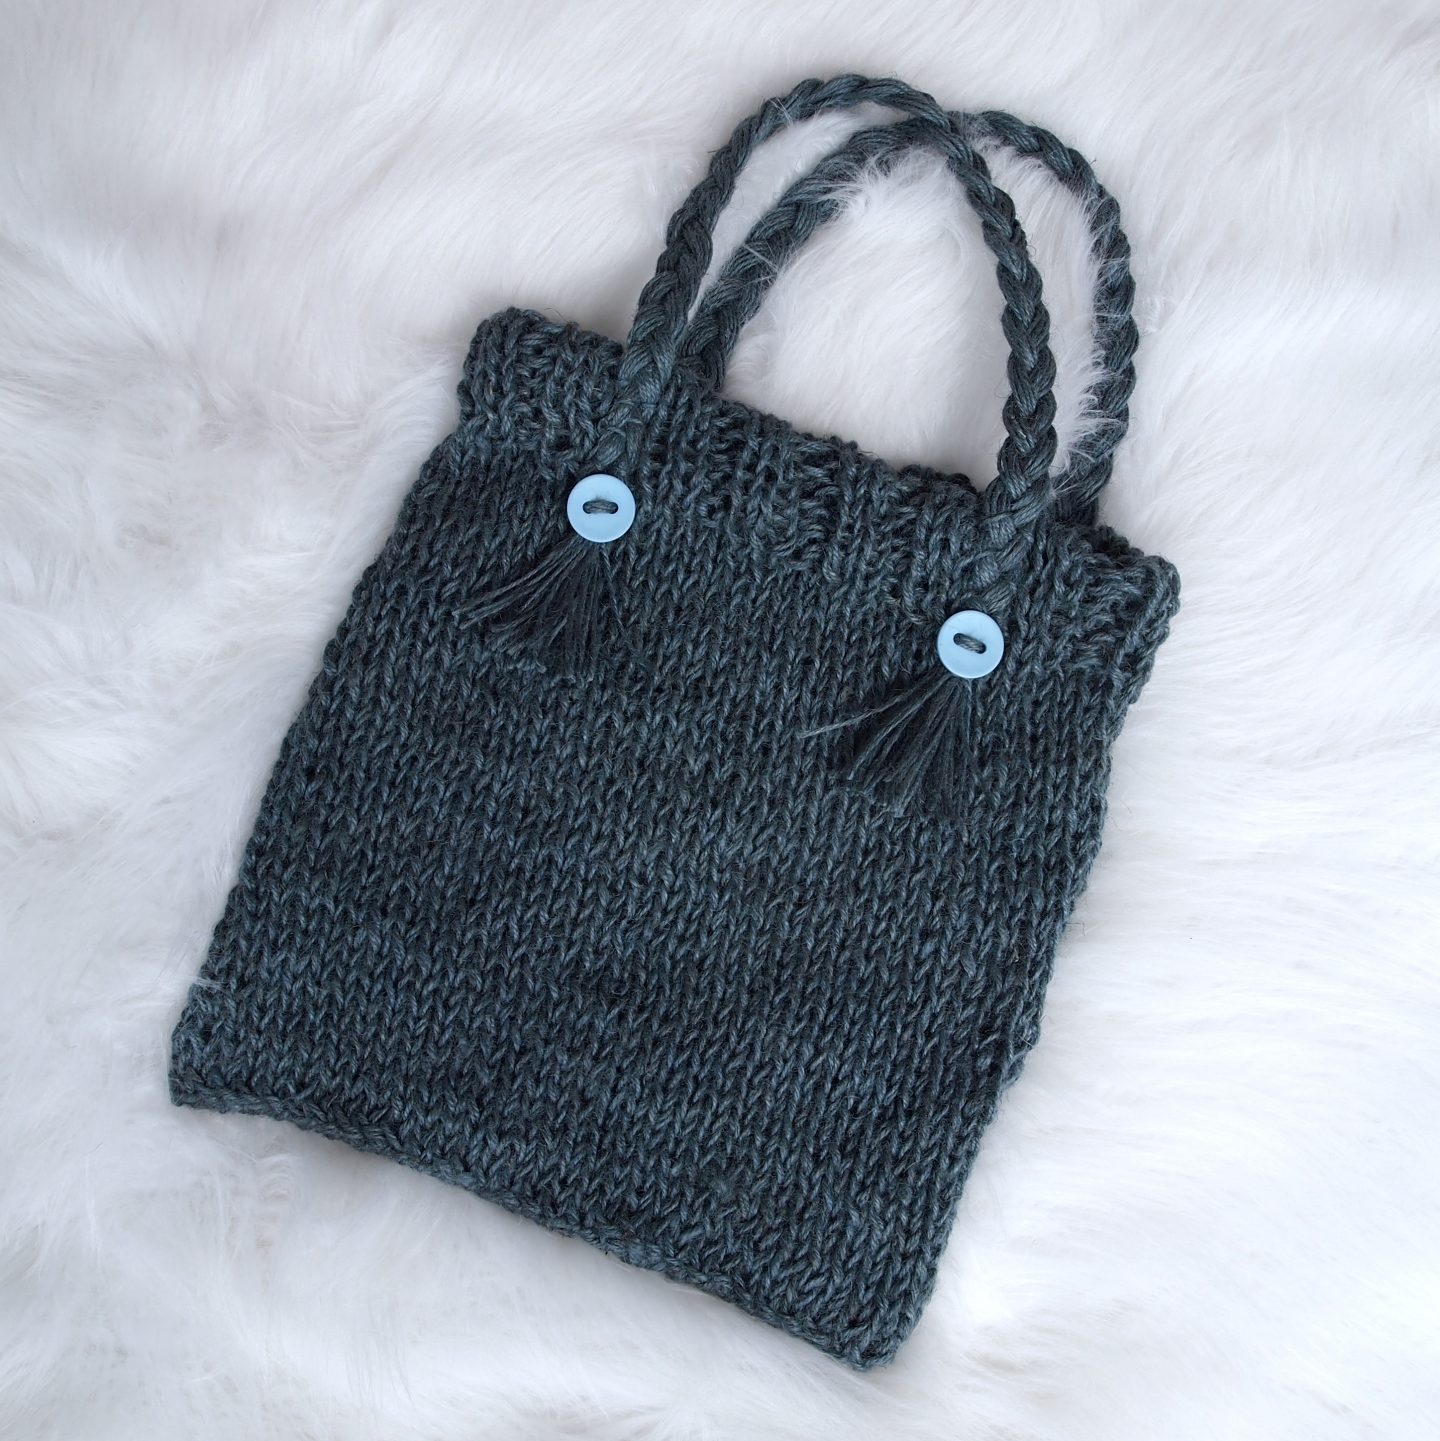 Knitted Jute Tote Bag